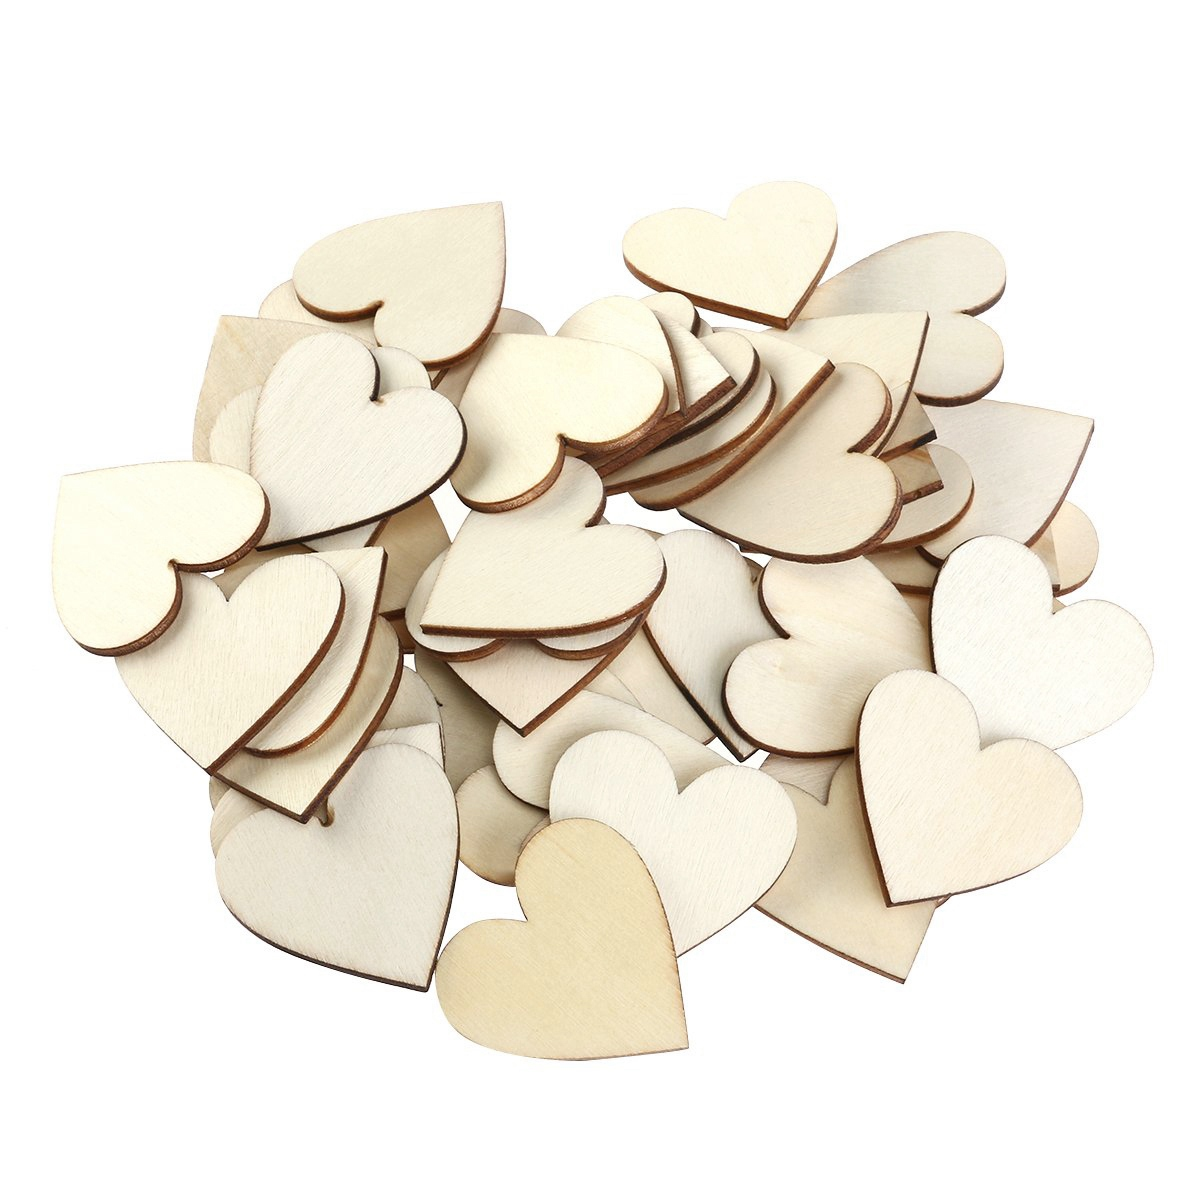 100 Pieces 40Mm Heart Wood Slices Slices For Diy Craft Embellishments Natural Wood Slices in Wood DIY Crafts from Home Garden